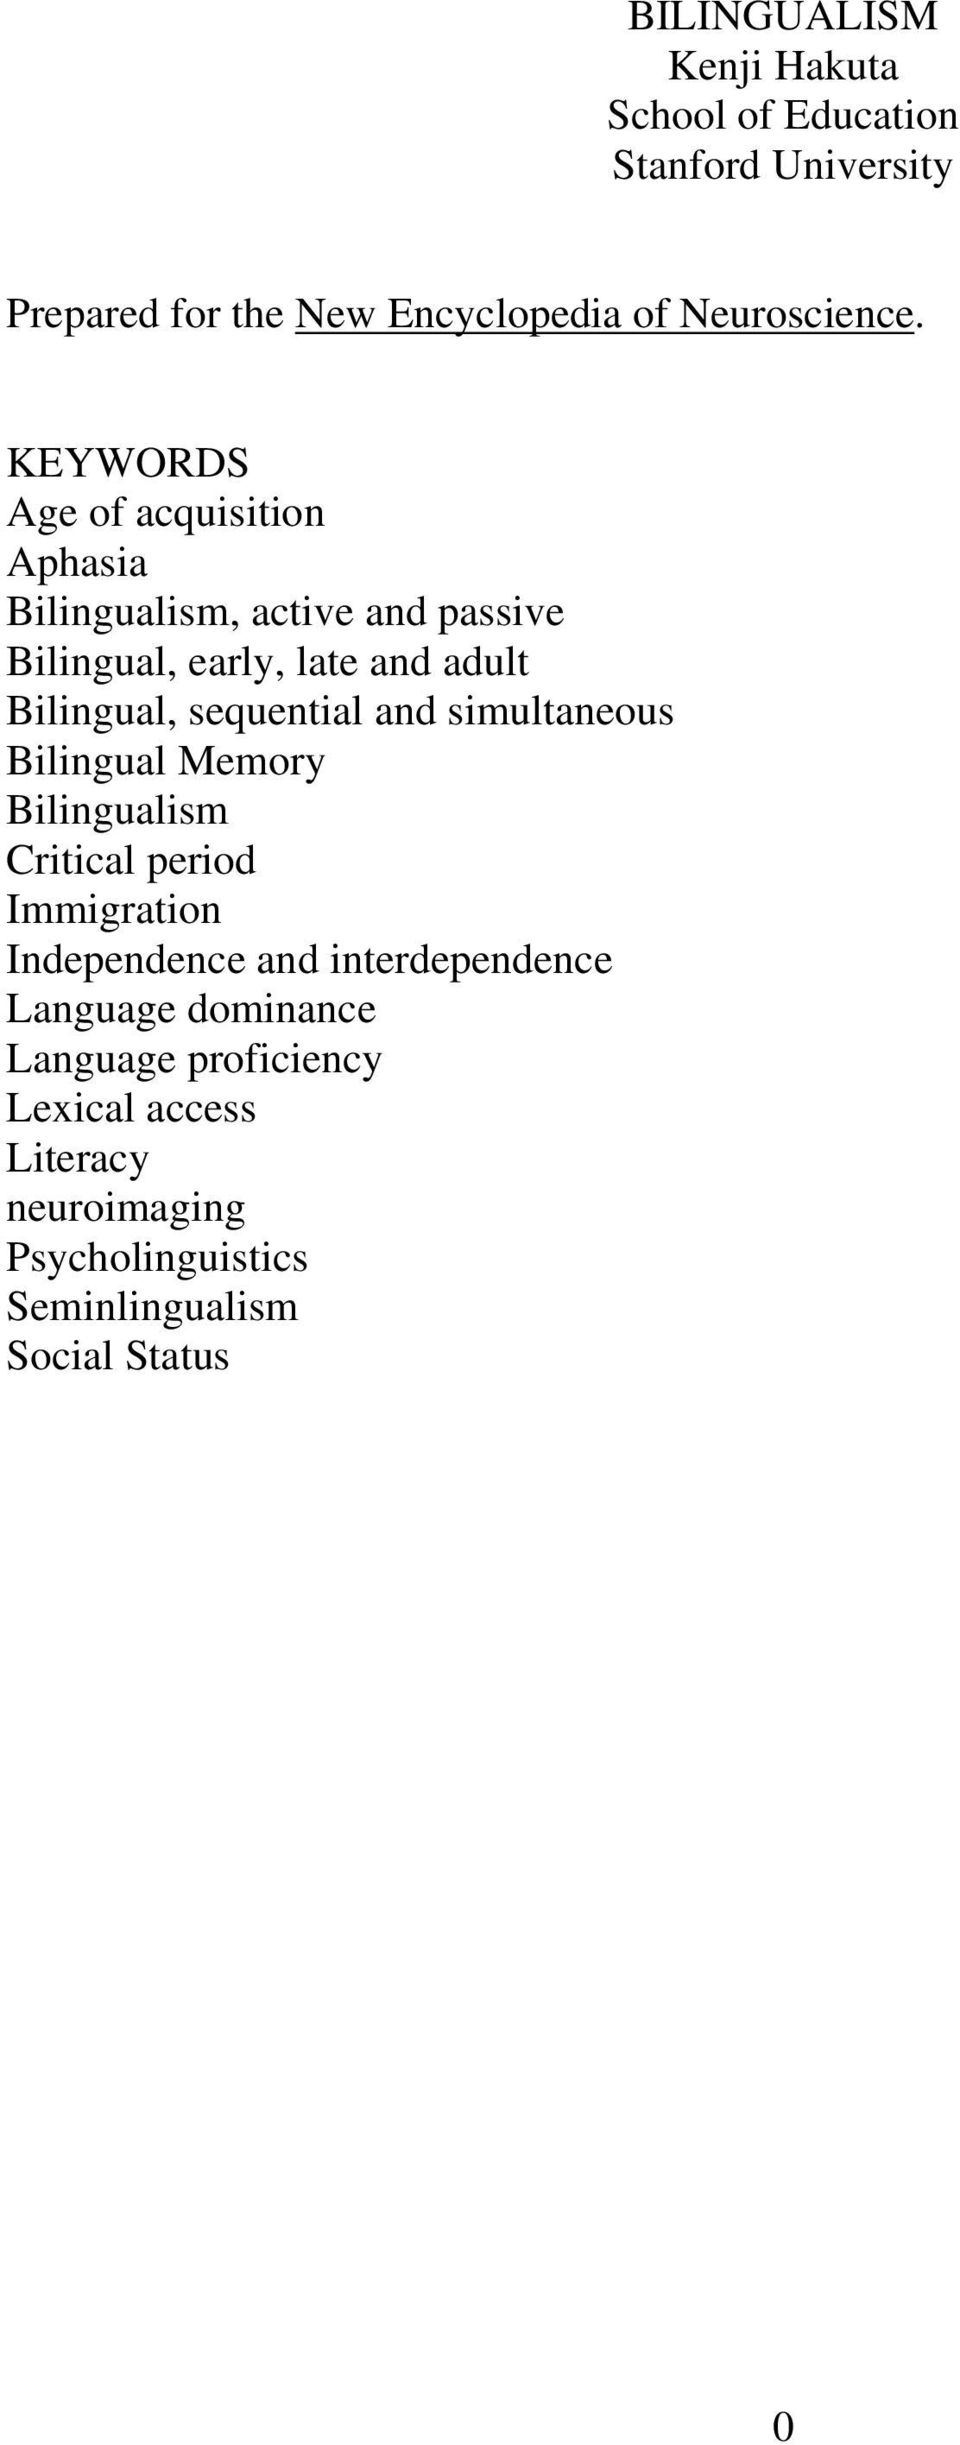 sequential and simultaneous Bilingual Memory Bilingualism Critical period Immigration Independence and interdependence